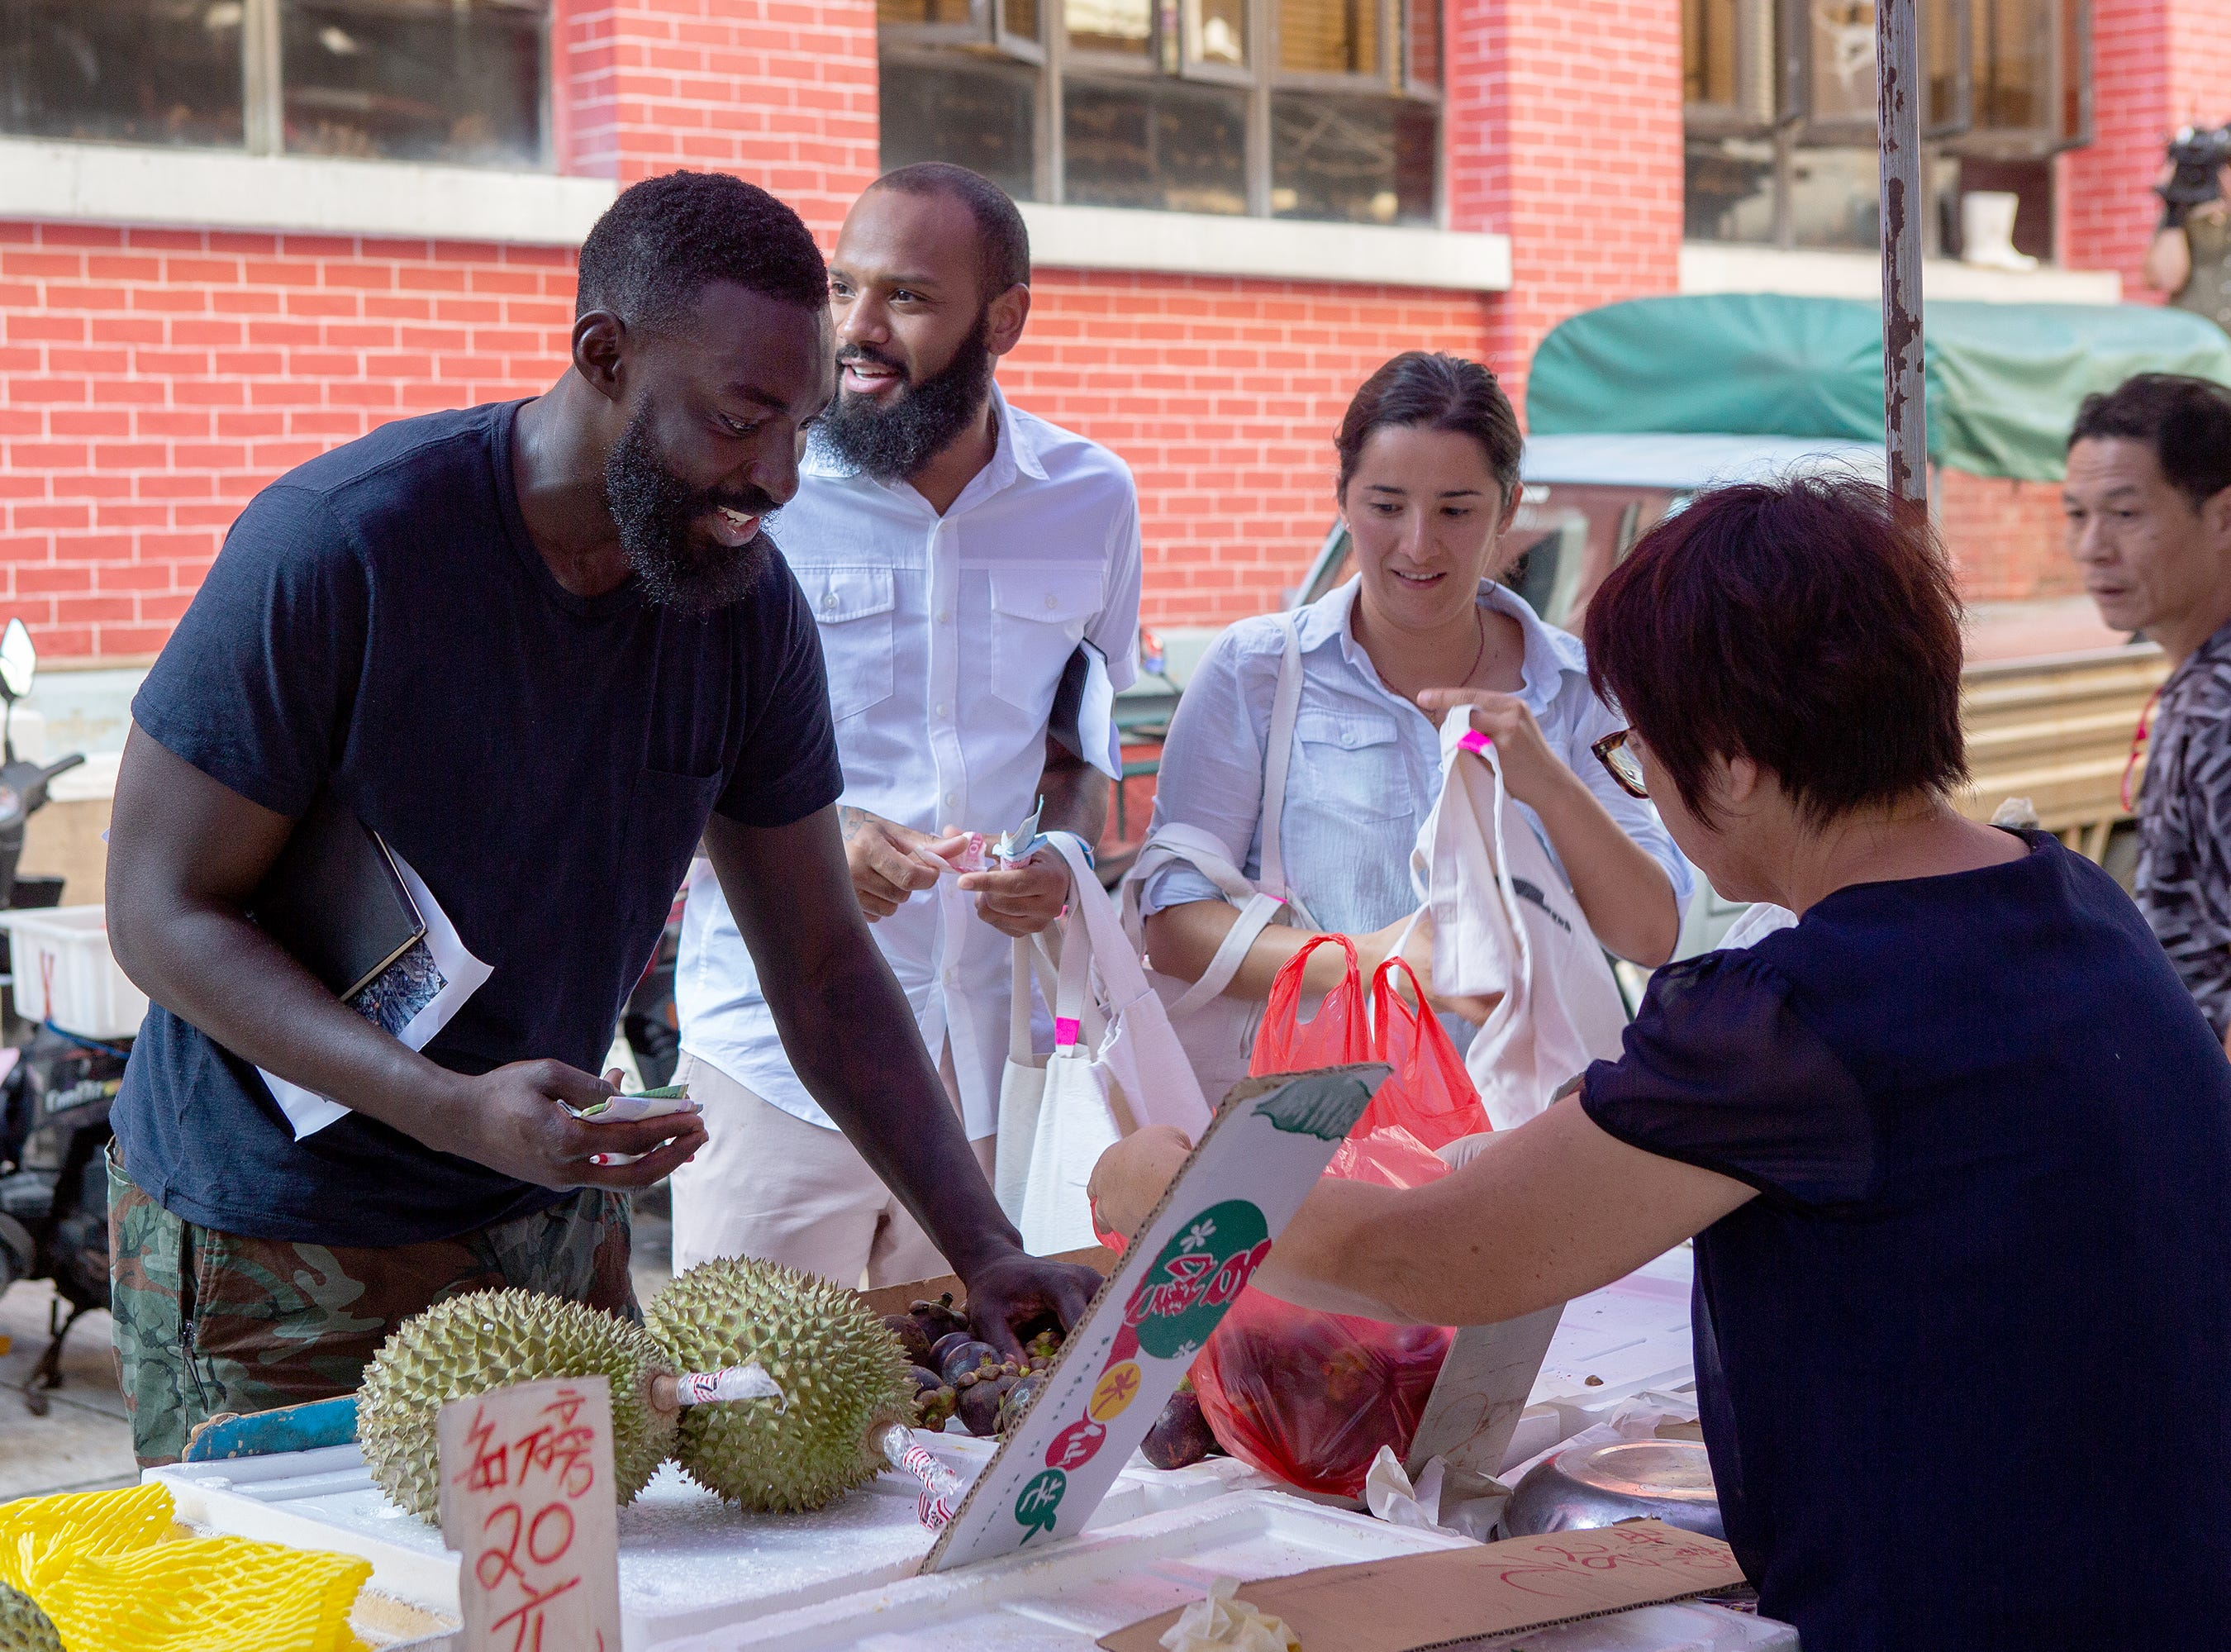 (Left to right) Finalist Eric Adjepong, with former contestants Justin Sutherland and Michelle Minori, shops for ingredients on episode 15 of 'Top Chef' Kentucky.